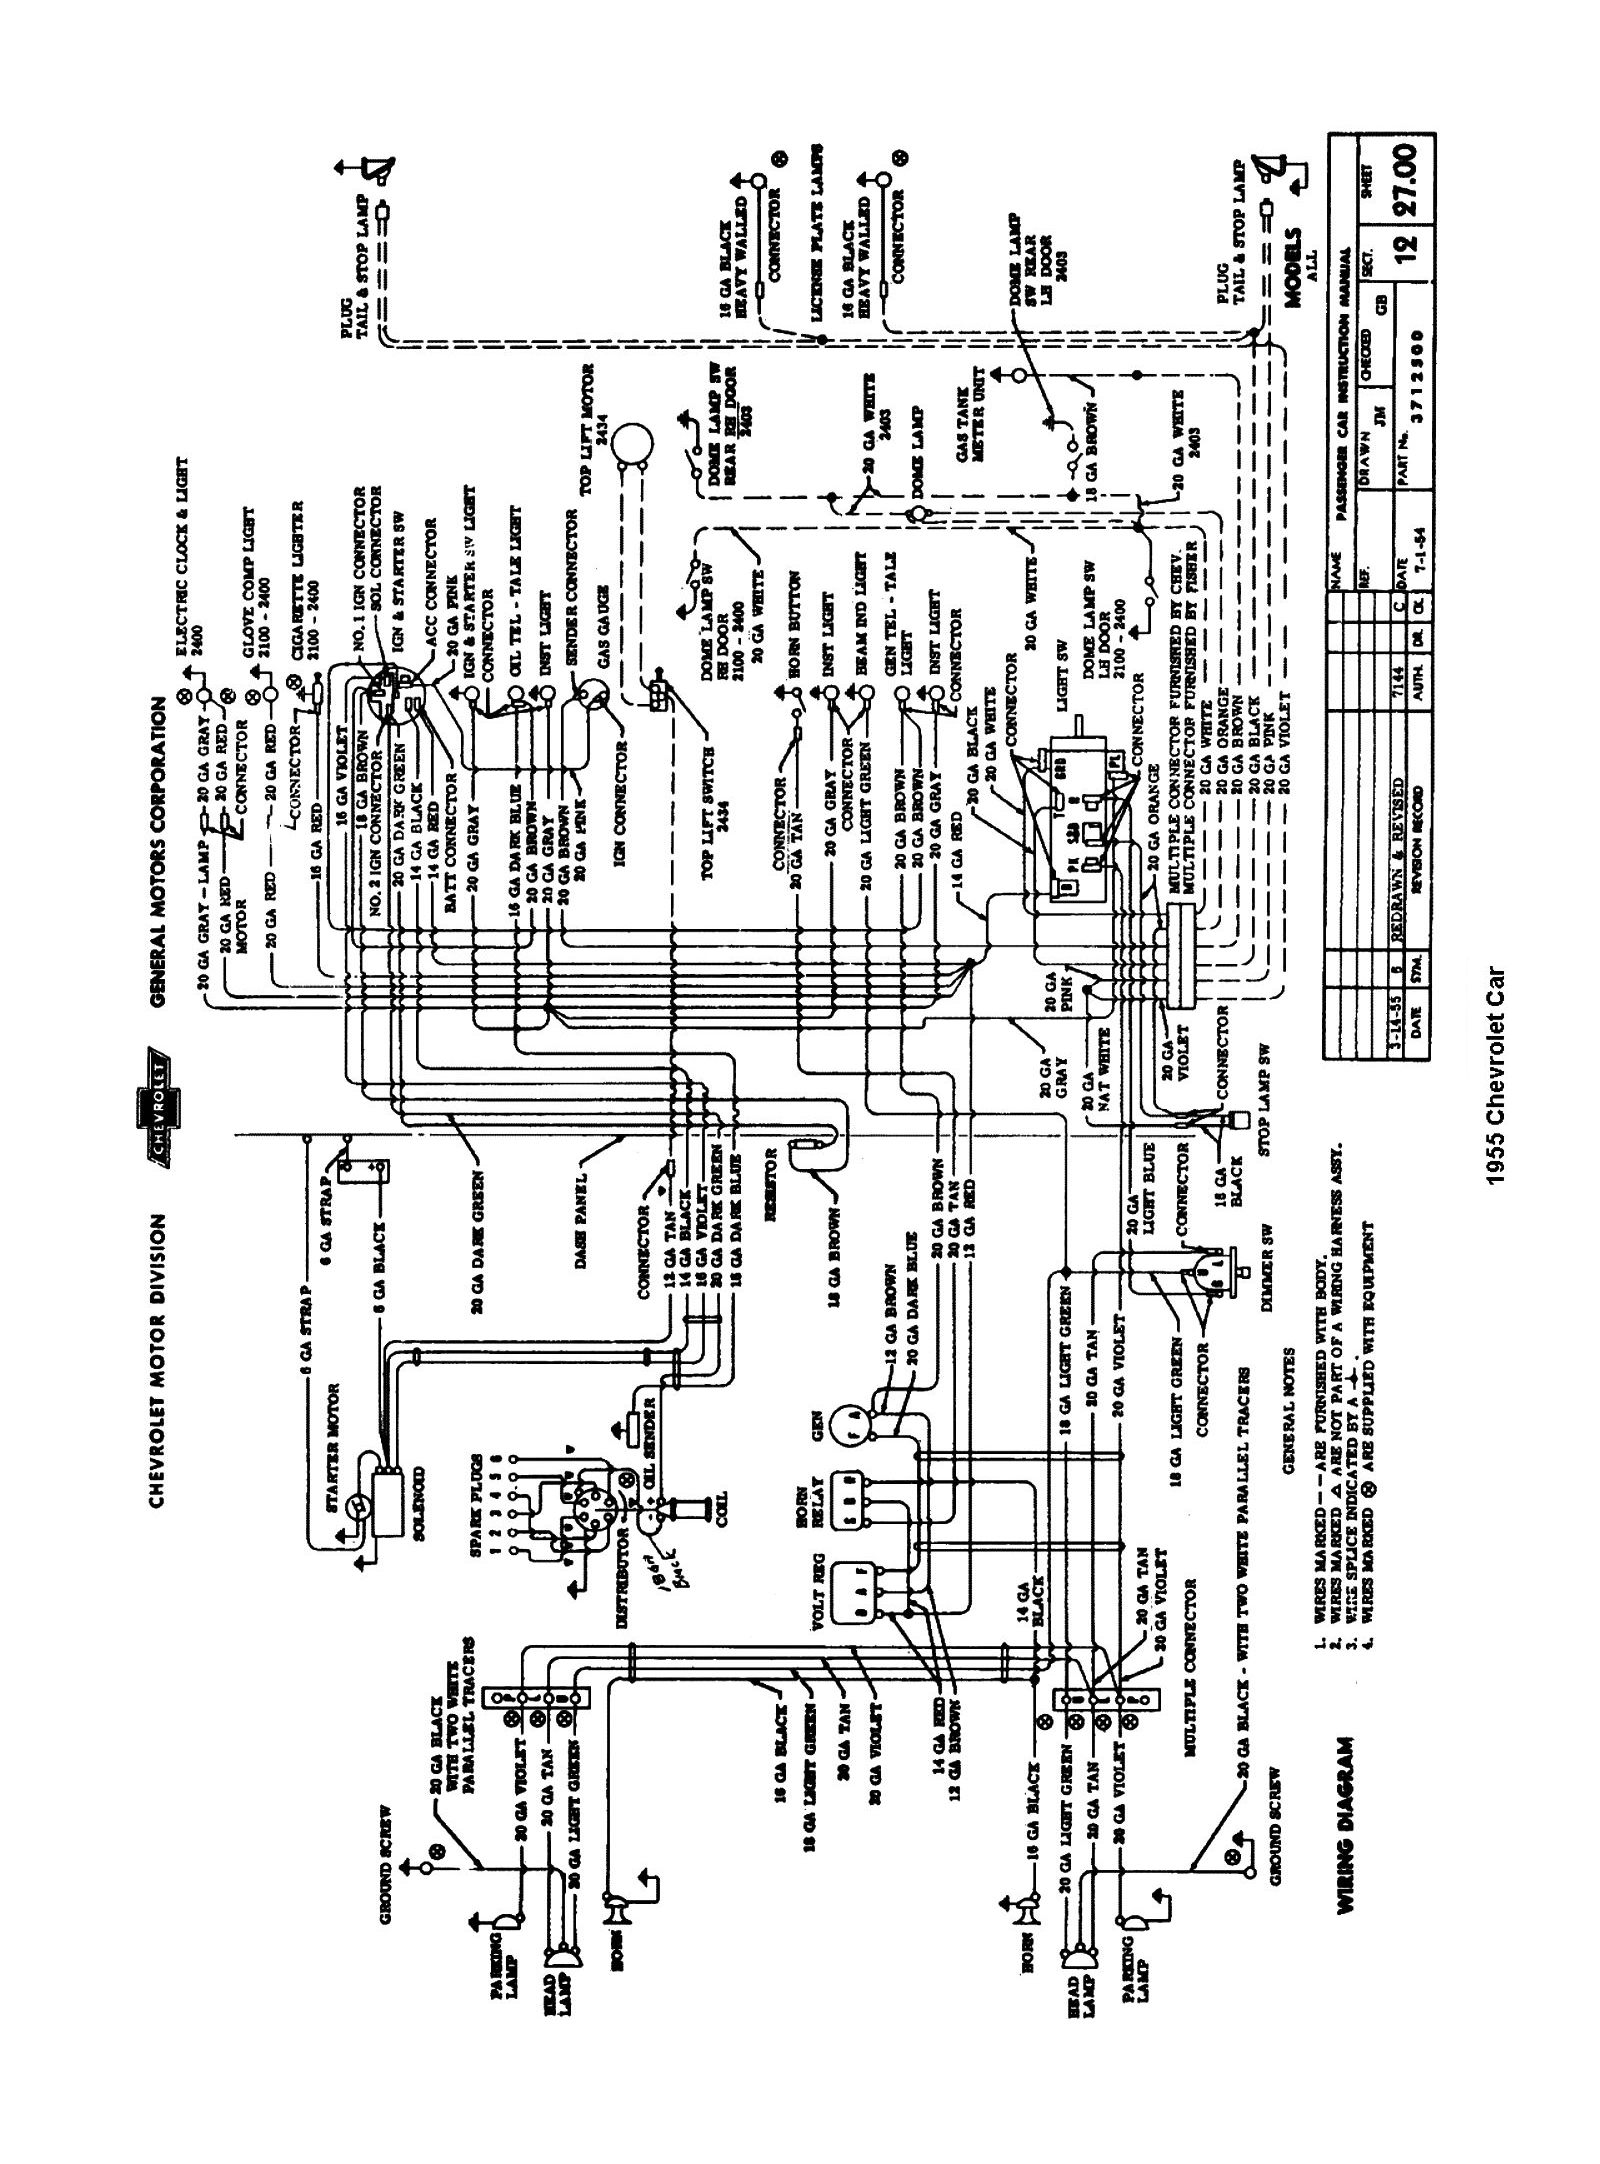 1939 Chevy Wire Diagram Wiring Library Likewise Ford 8n 12 Volt Conversion On Diagrams